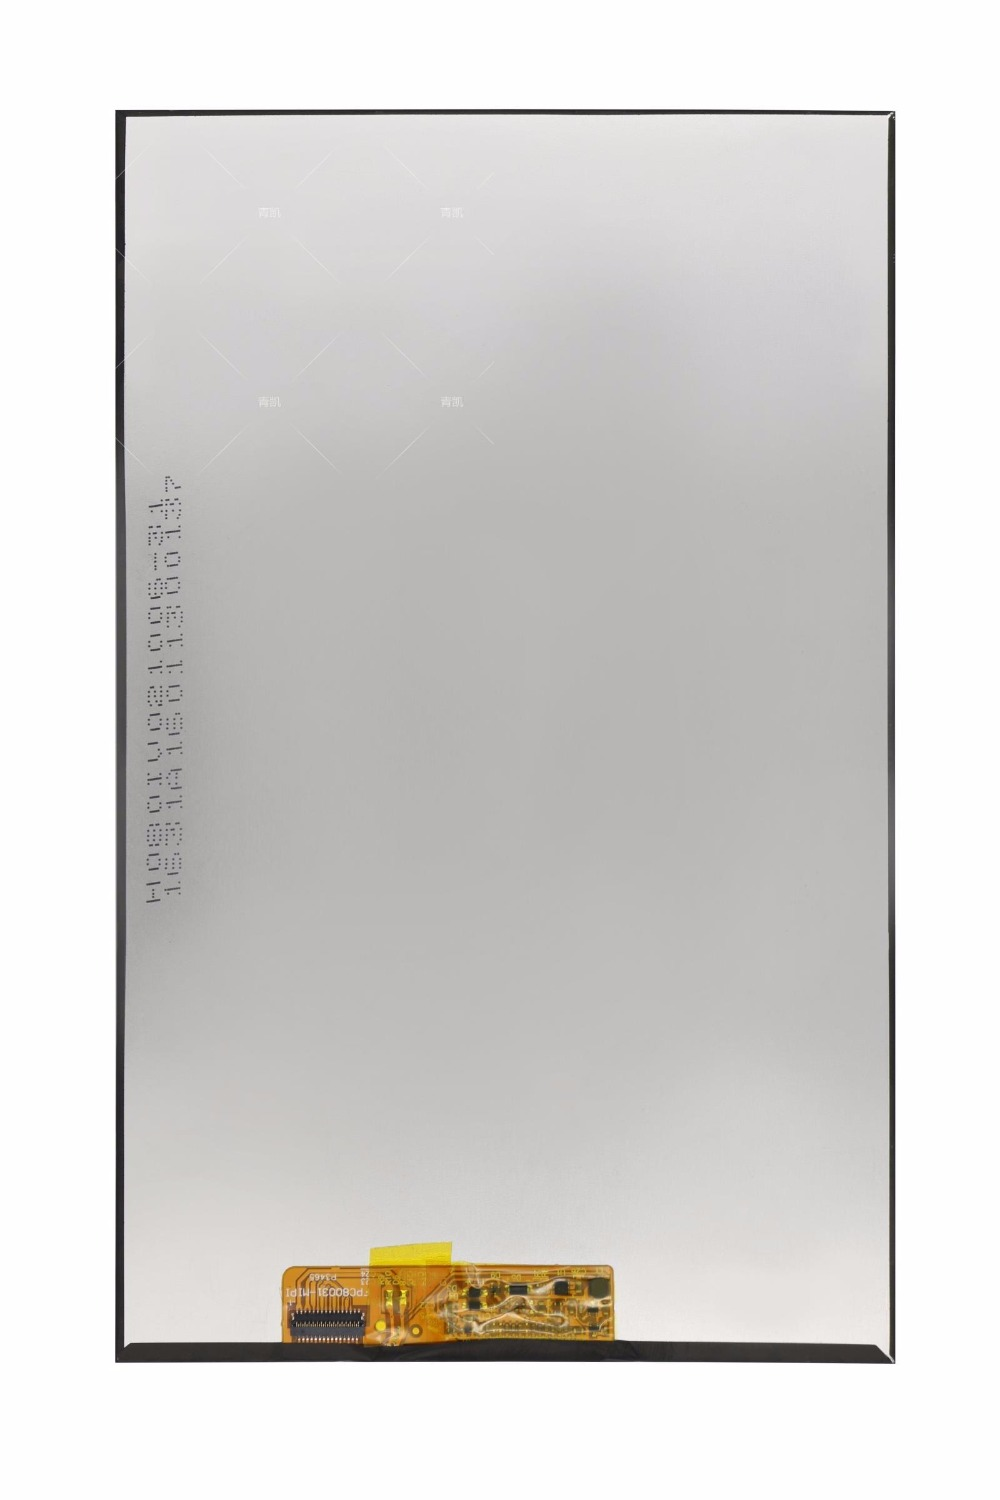 8inch USED FPC80031-MIPI For Newman Q8 8 inch screen LCD screen IPS LCD matrix 8 9 inch lcd screen model claa089na0ccw